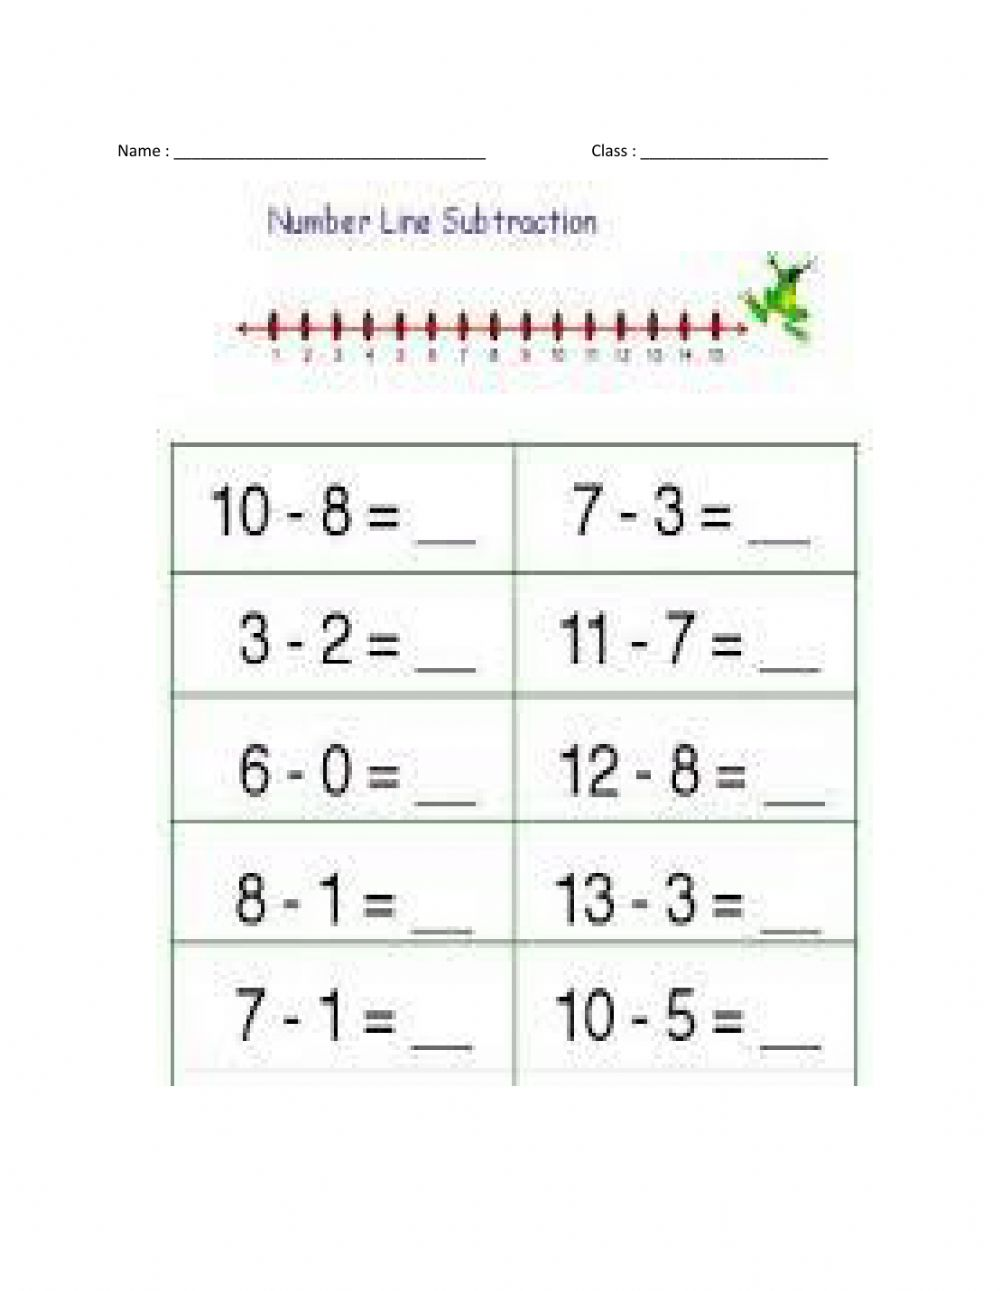 hight resolution of Number line subtraction activity